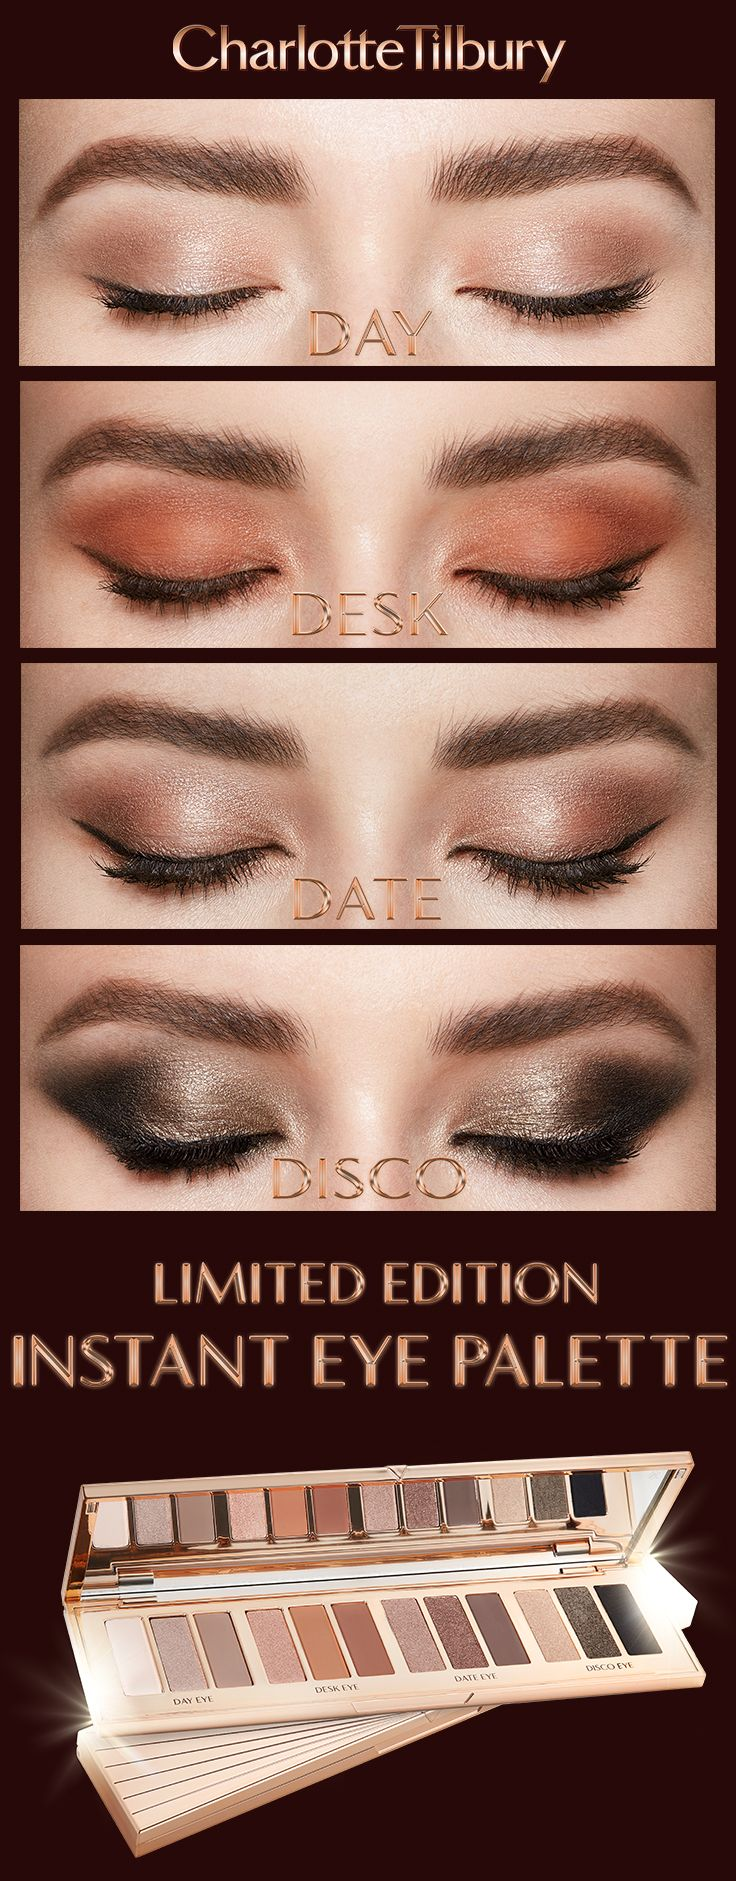 Darlings, this is for all seasons, all occasions! My Instant Eye Palette, inspired by my smokey eye legacy, is a REVOLUTIONARY control-pressed palette that will change the way you apply your eye makeup for perfect application EVERY TIME.